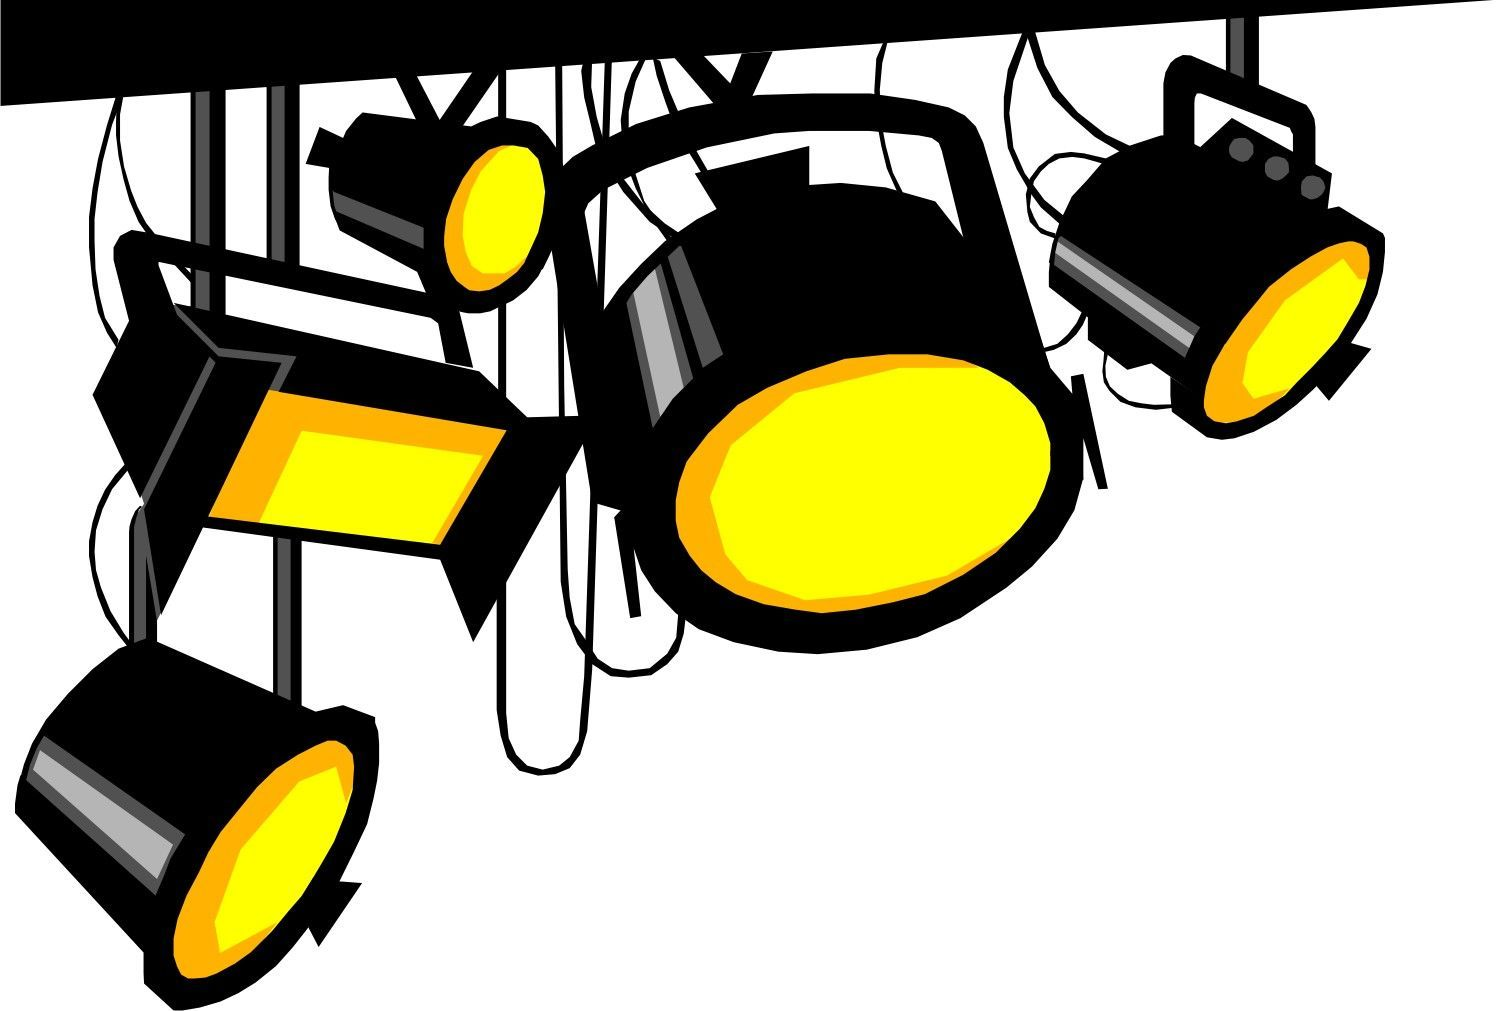 Stage crew clipart 4 » Clipart Portal.